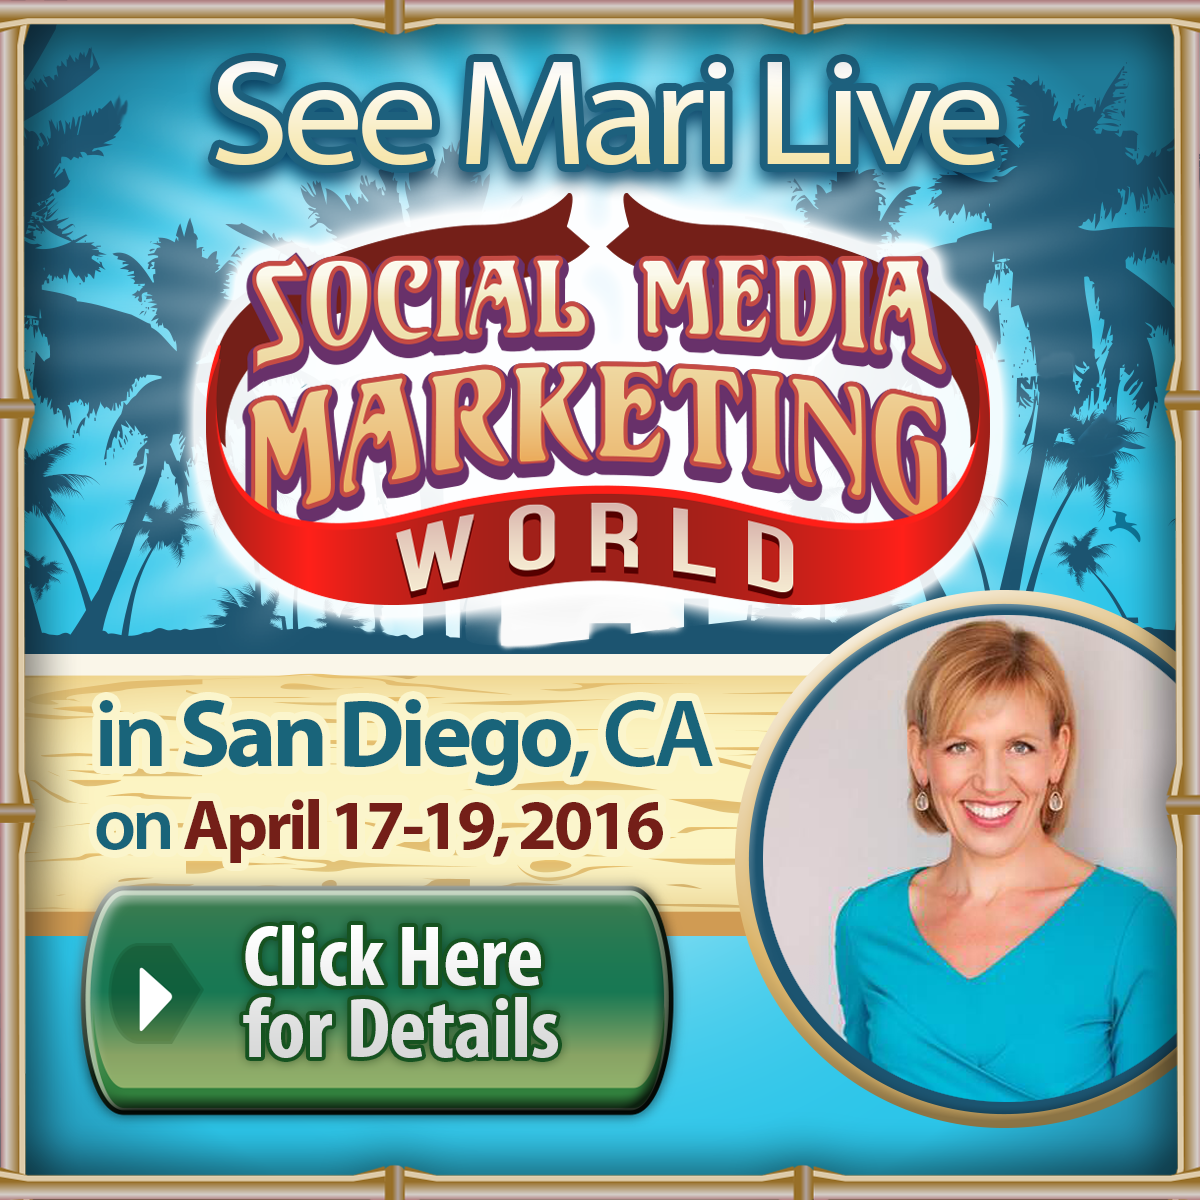 Attend Social Media Marketing World 2016